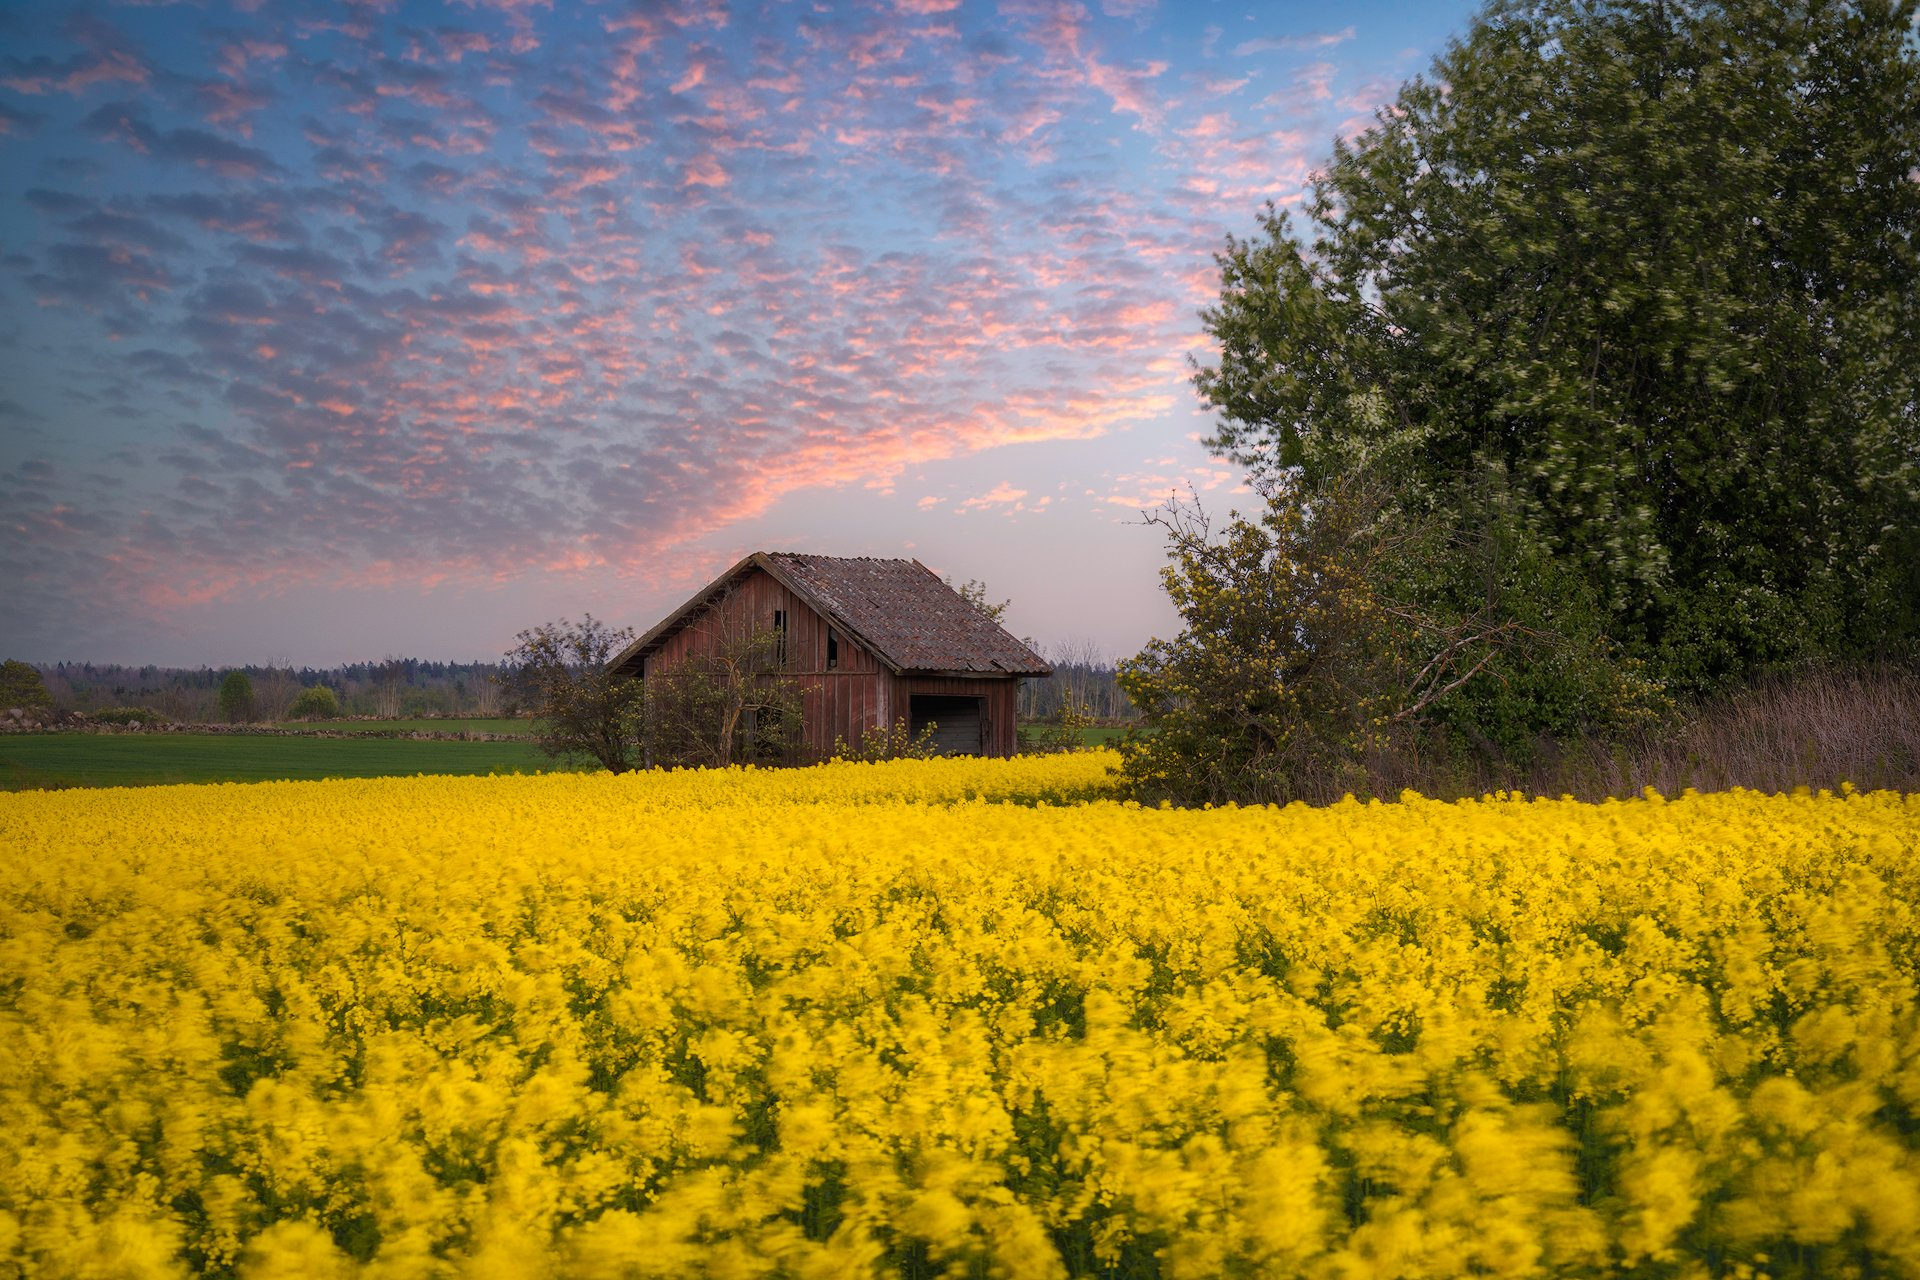 Barn, birdcherry, birdcherryflowers, birdcherrytree, Bushes, cabin, canola, Clouds, colza, Cottage, crib, dump, eveningmood, Farming, Fields, Hovel, Hut, kennel, lodge, outbuilding, rapeseed, rapeseedfield, Shack, Shanty, shed, stonefence, Stonewall, Yell, Ludwig Riml